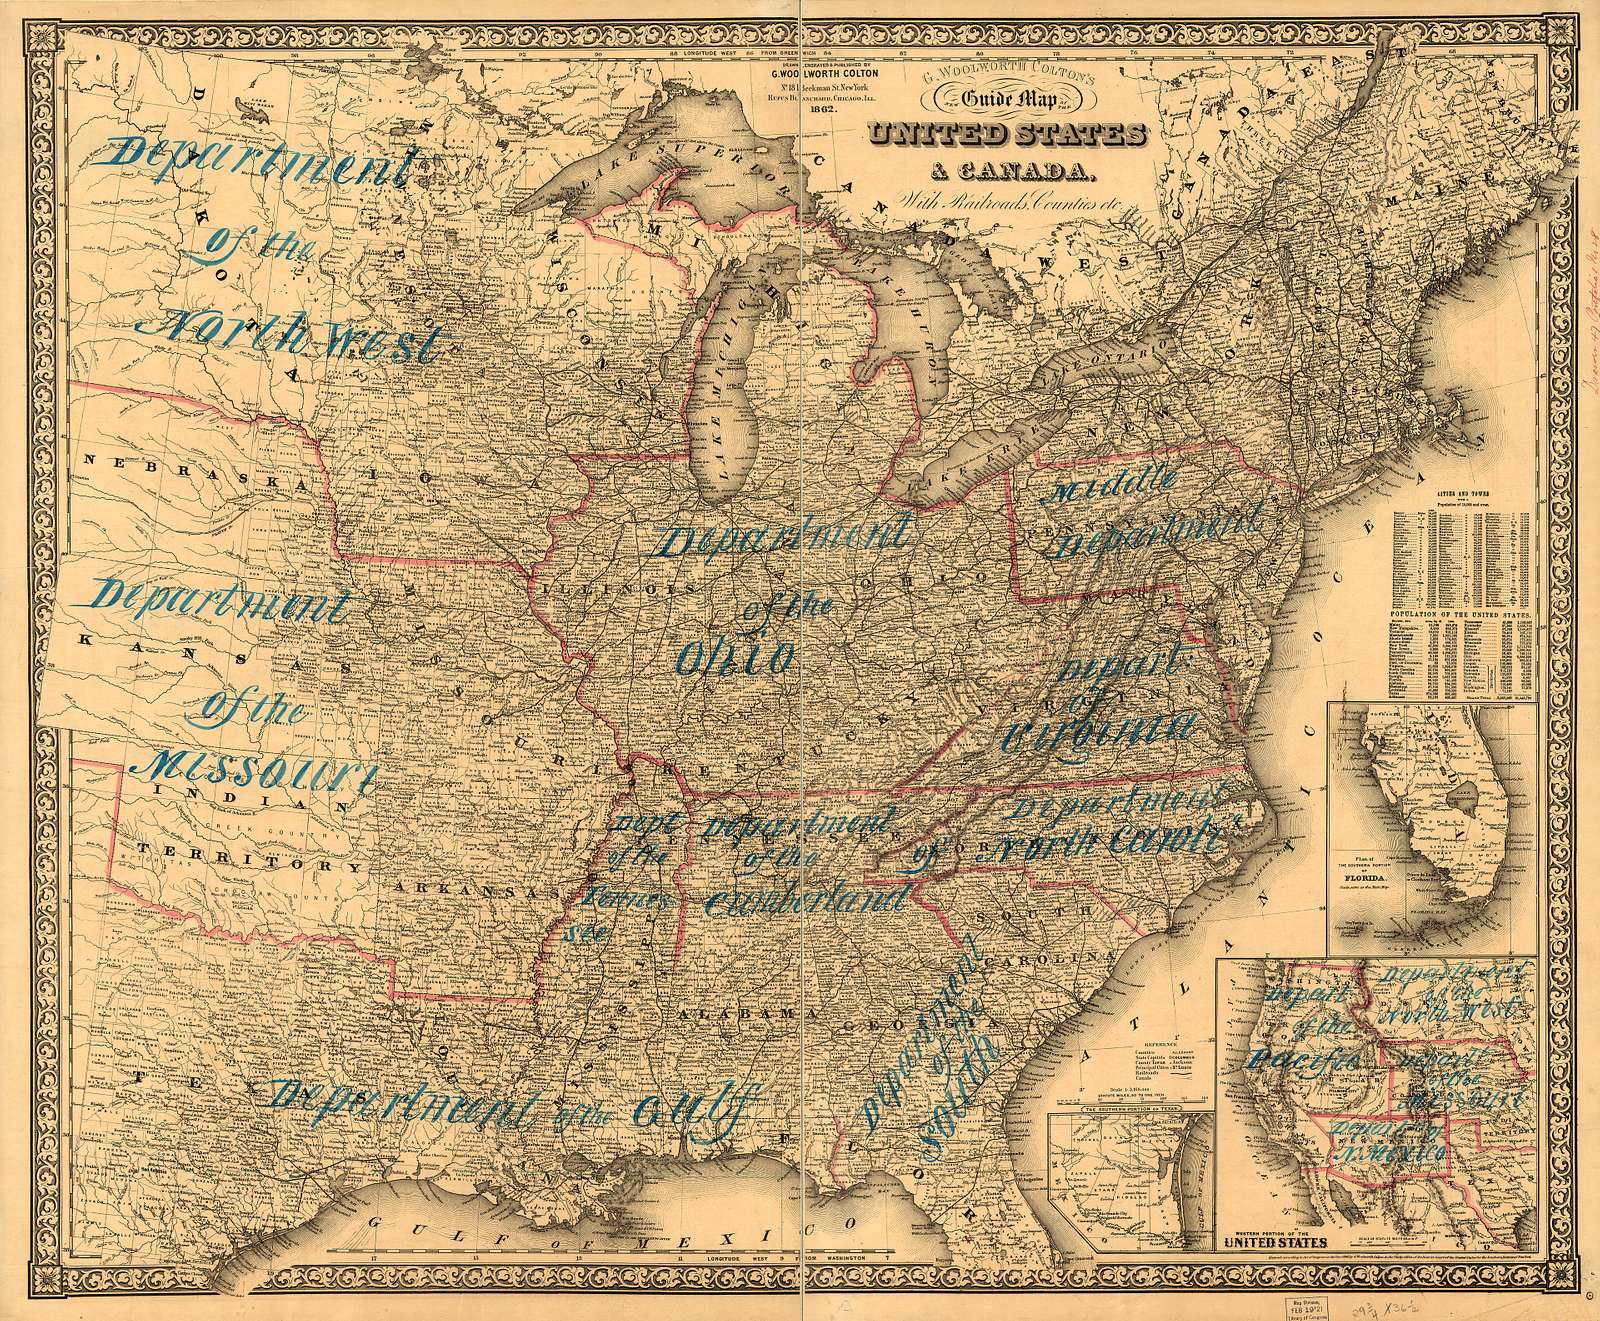 G. Woolworth Colton's new guide map of the United States & Canada, with railroads, counties, etc.